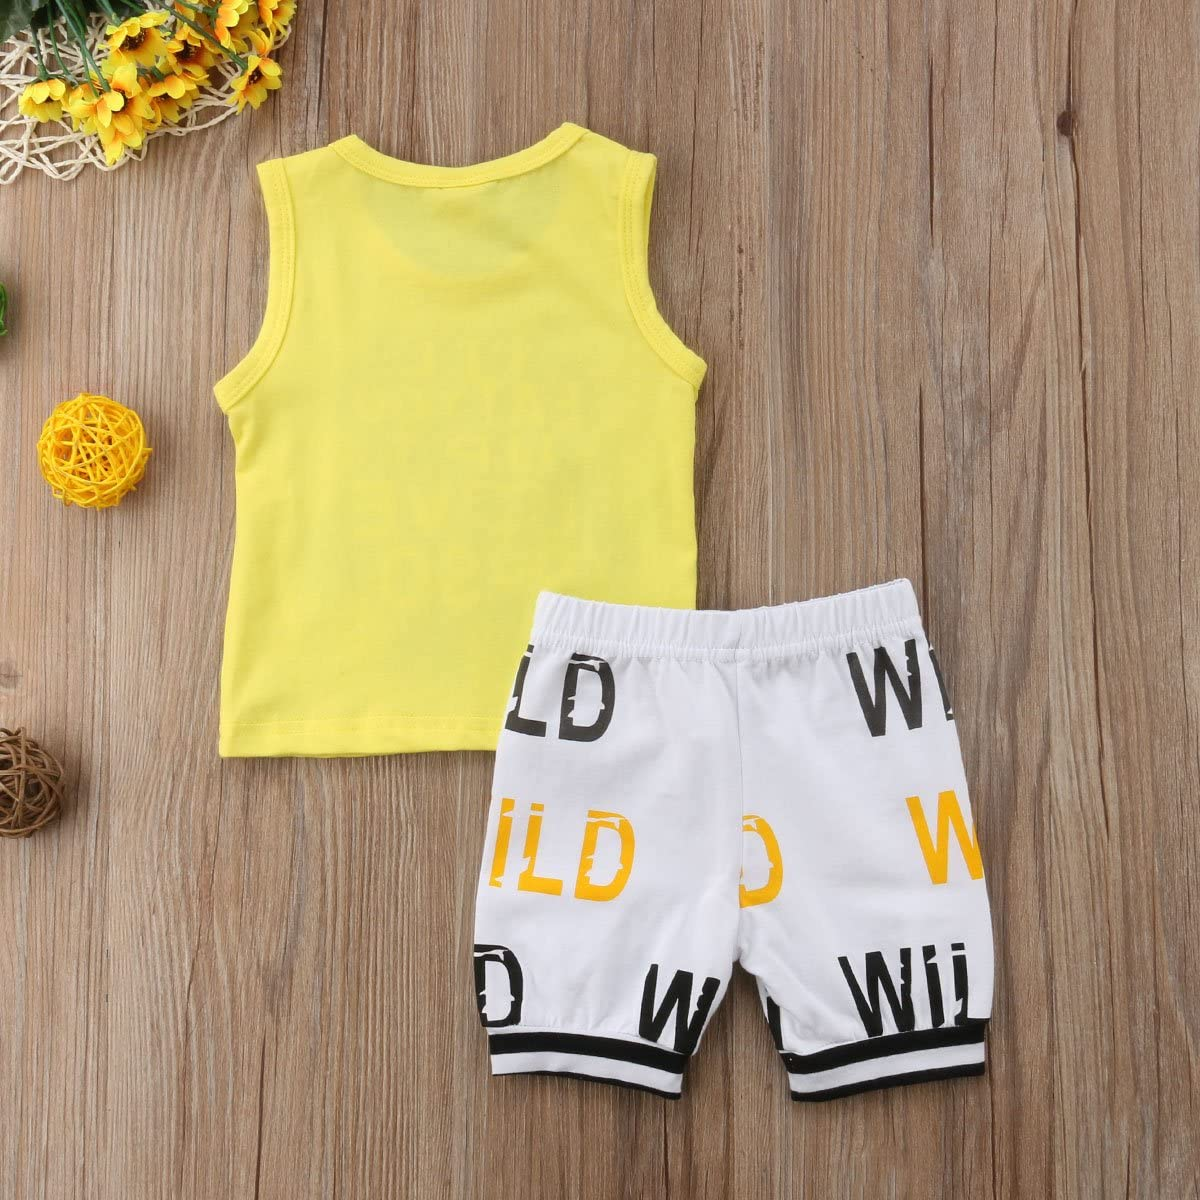 Lamuusaa Newborn Infant Toddler Baby Boy Sleeveless Cartoon Tank Top Vest White Letter Printed Shorts Pants Summer Outfit